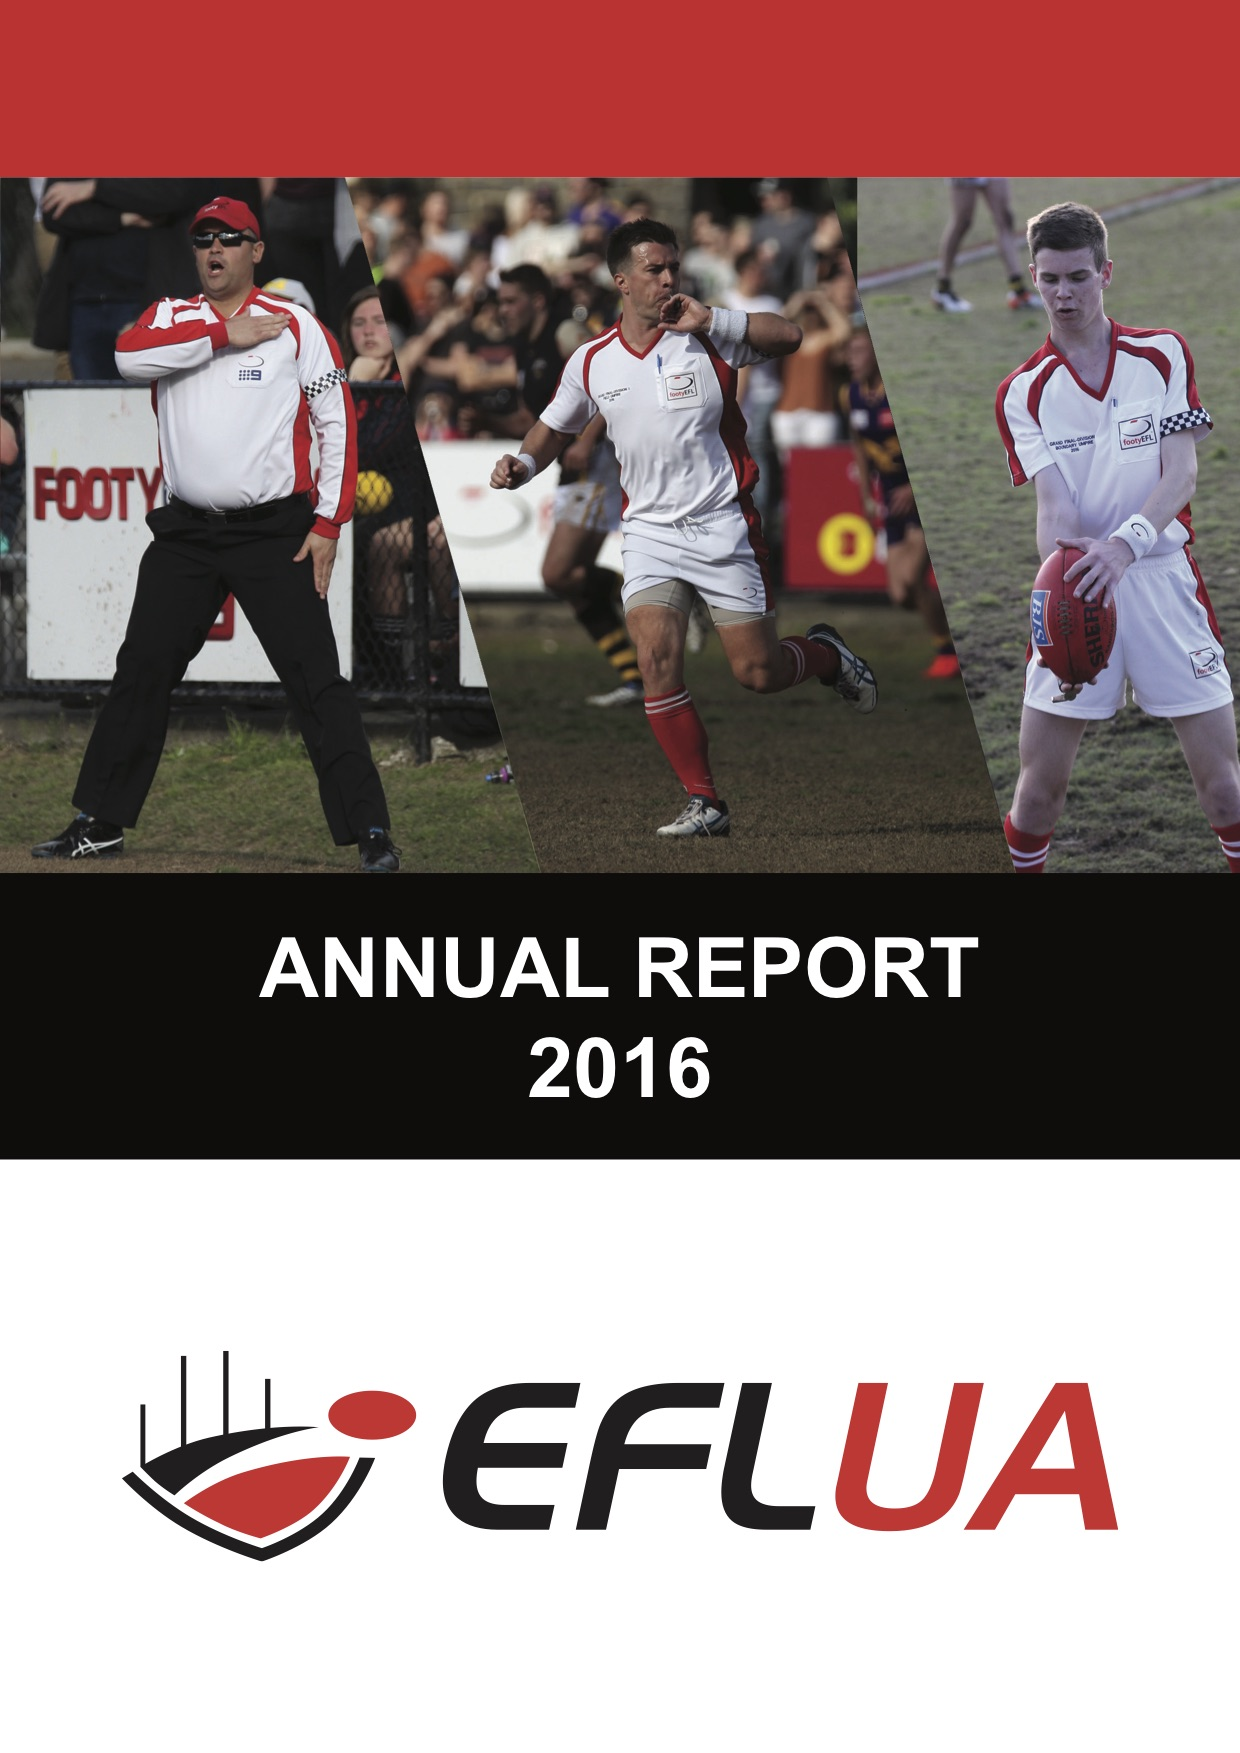 2016 Annual Report IMAGE.jpg